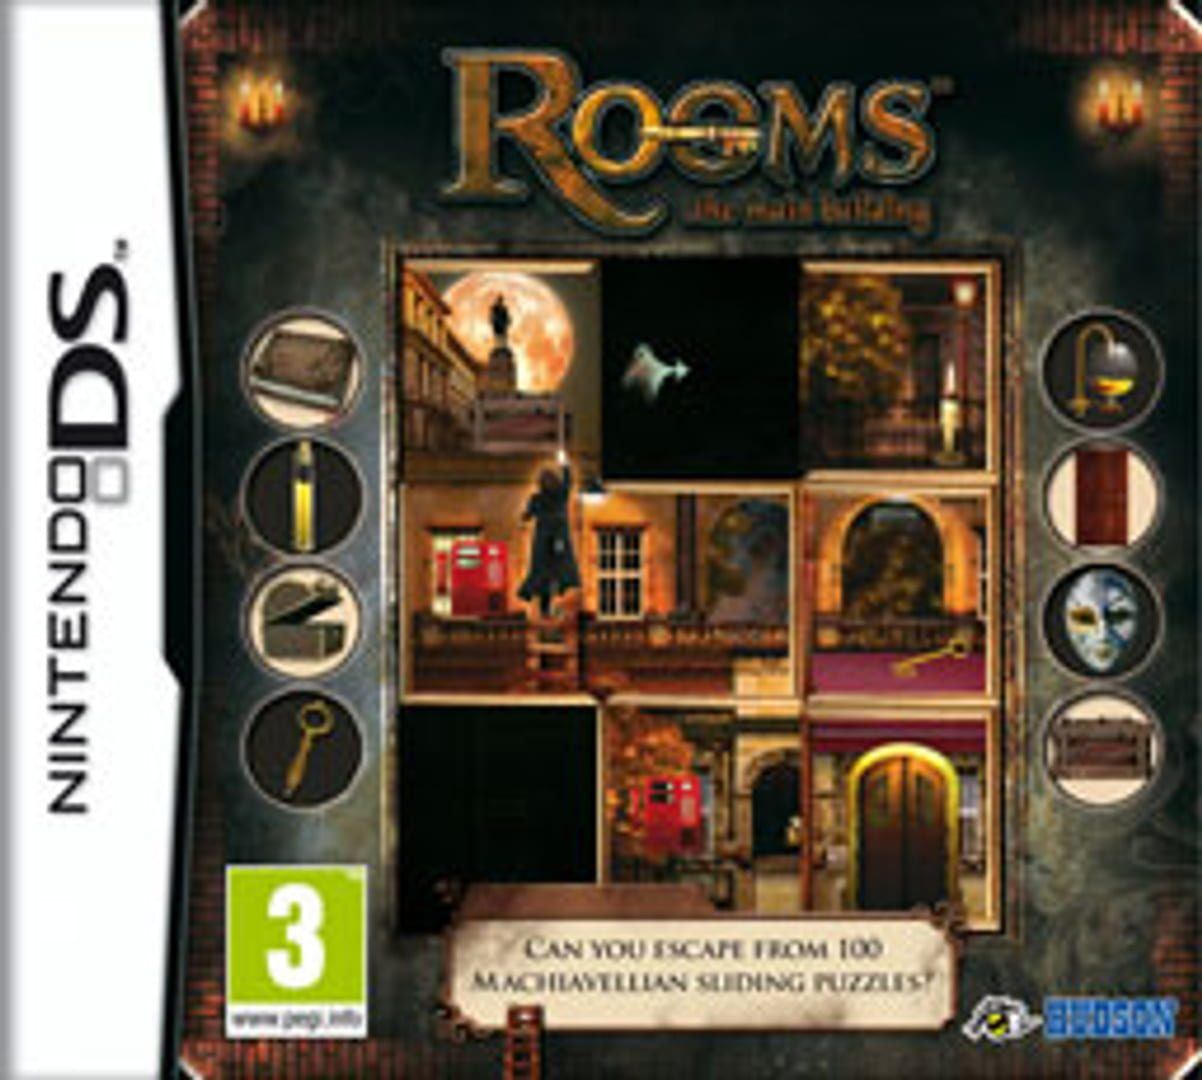 buy Rooms: The Main Building cd key for pc platform